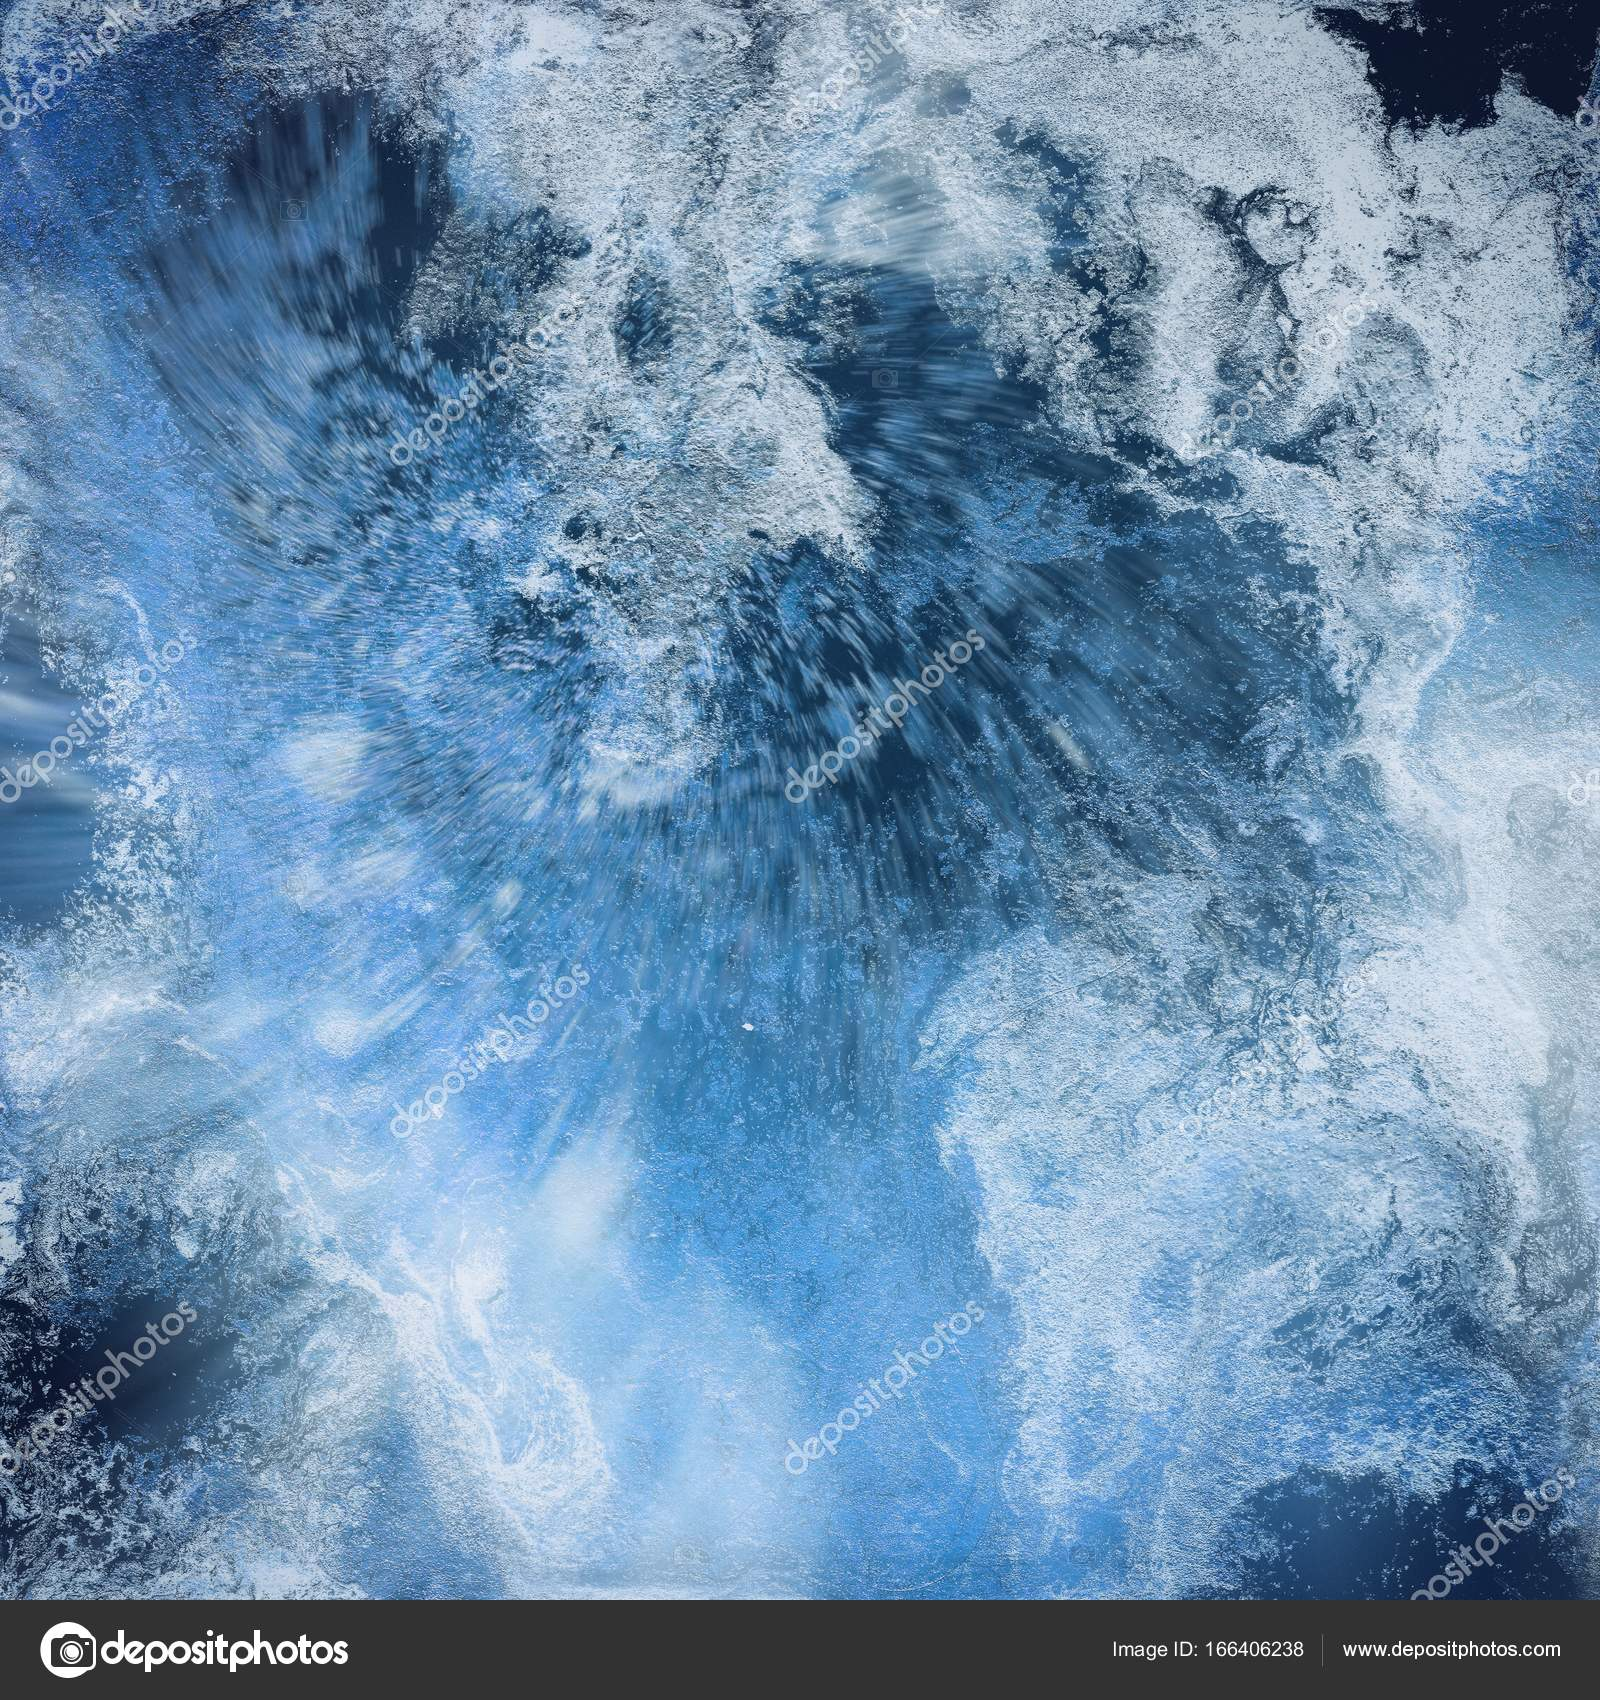 Wonderful Wallpaper Marble Painting - depositphotos_166406238-stock-photo-abstract-liquid-blue-background-pattern  Graphic_376542.jpg